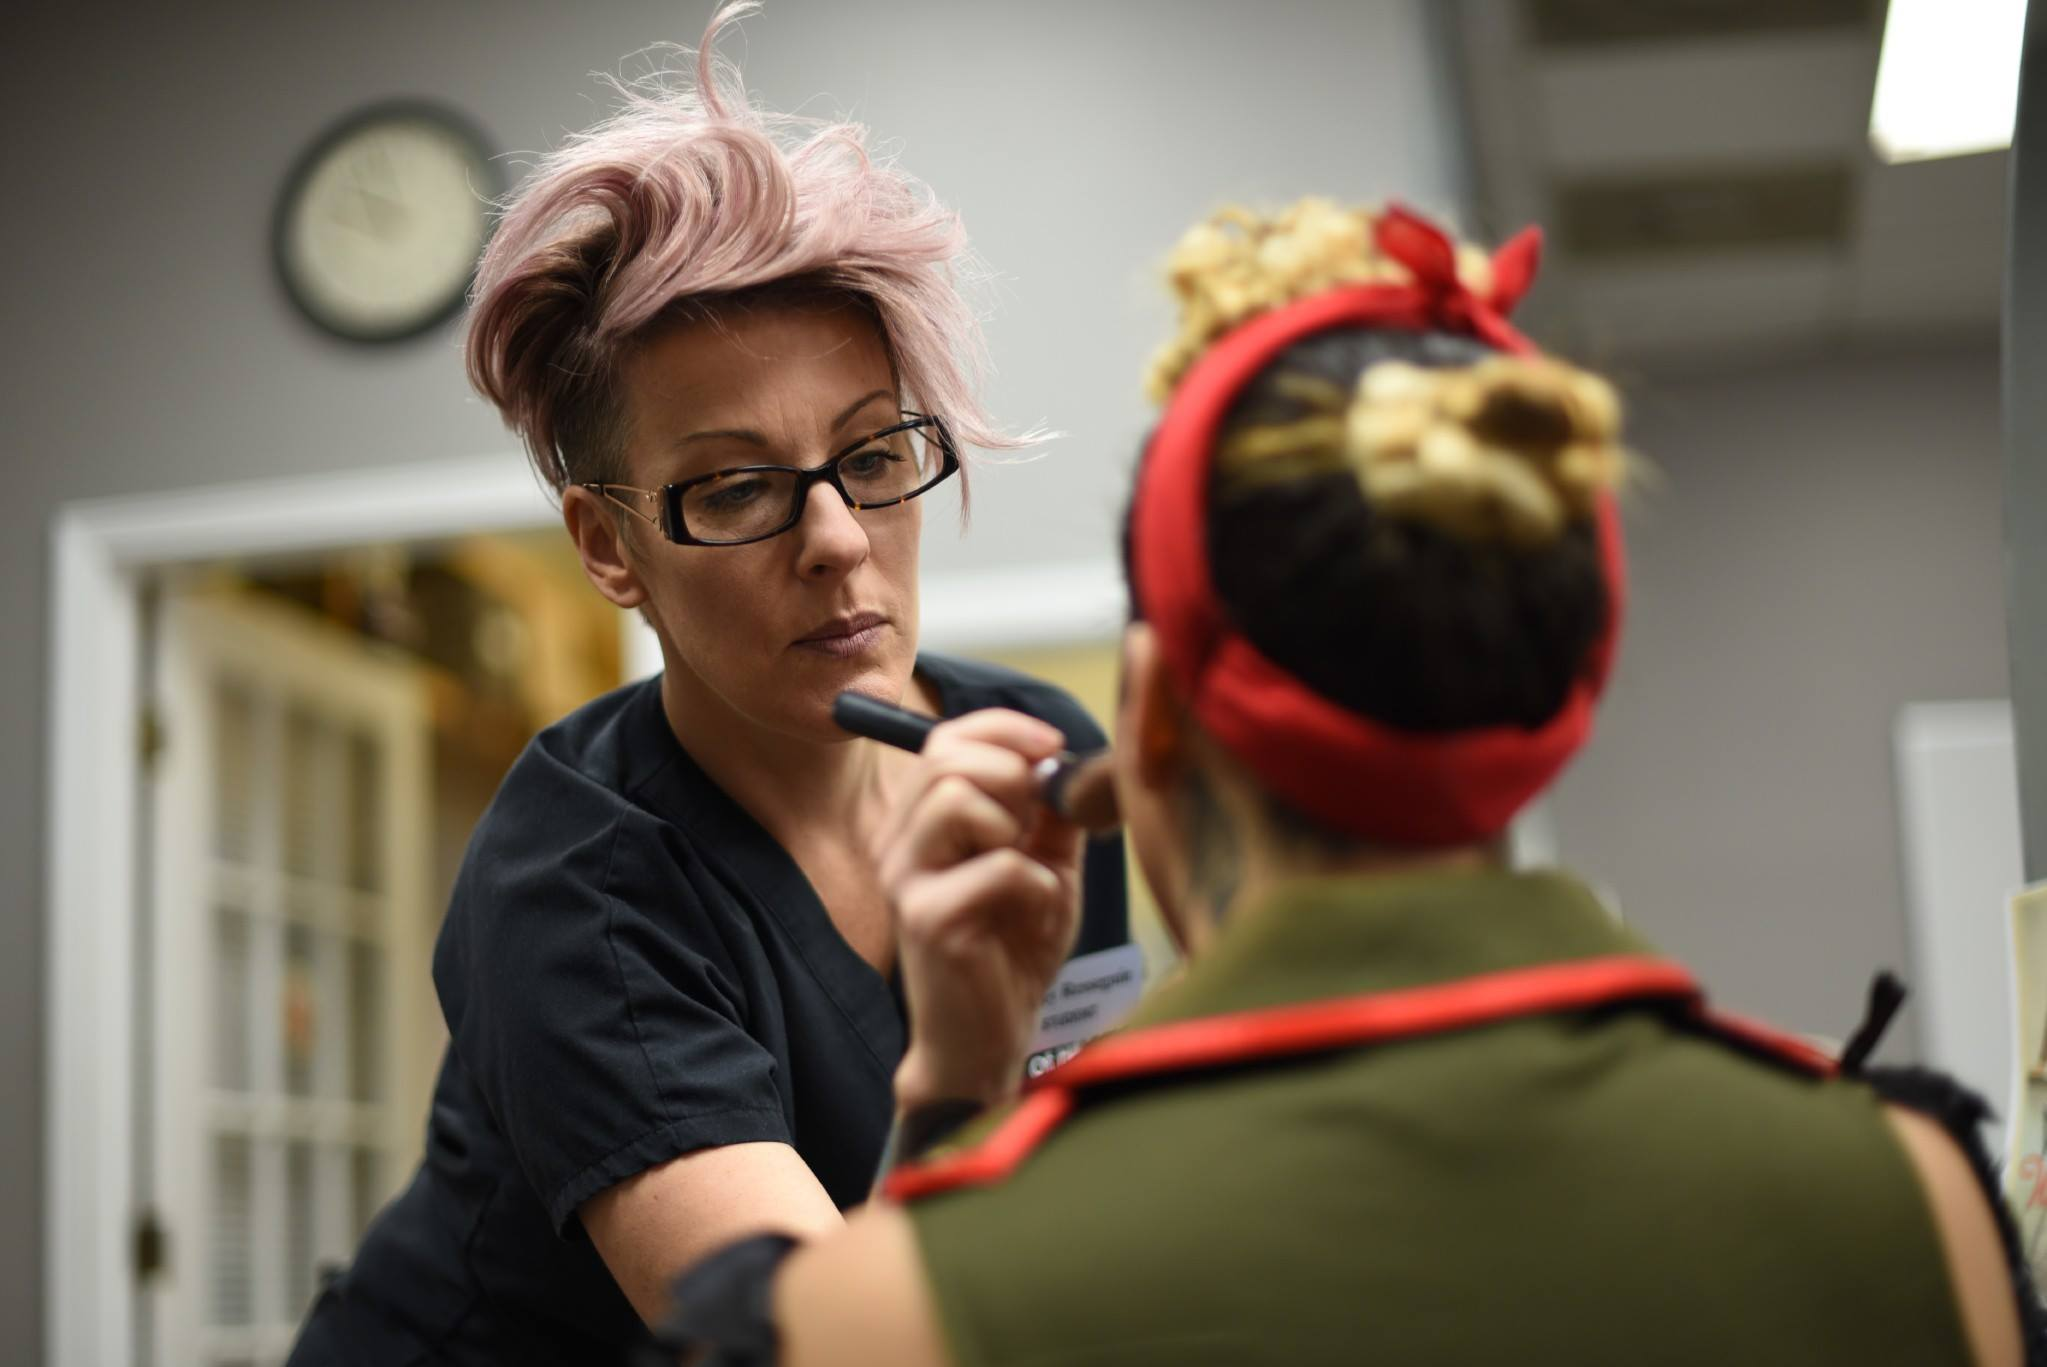 Closeup shot of pink haired woman applying makeup to another girl